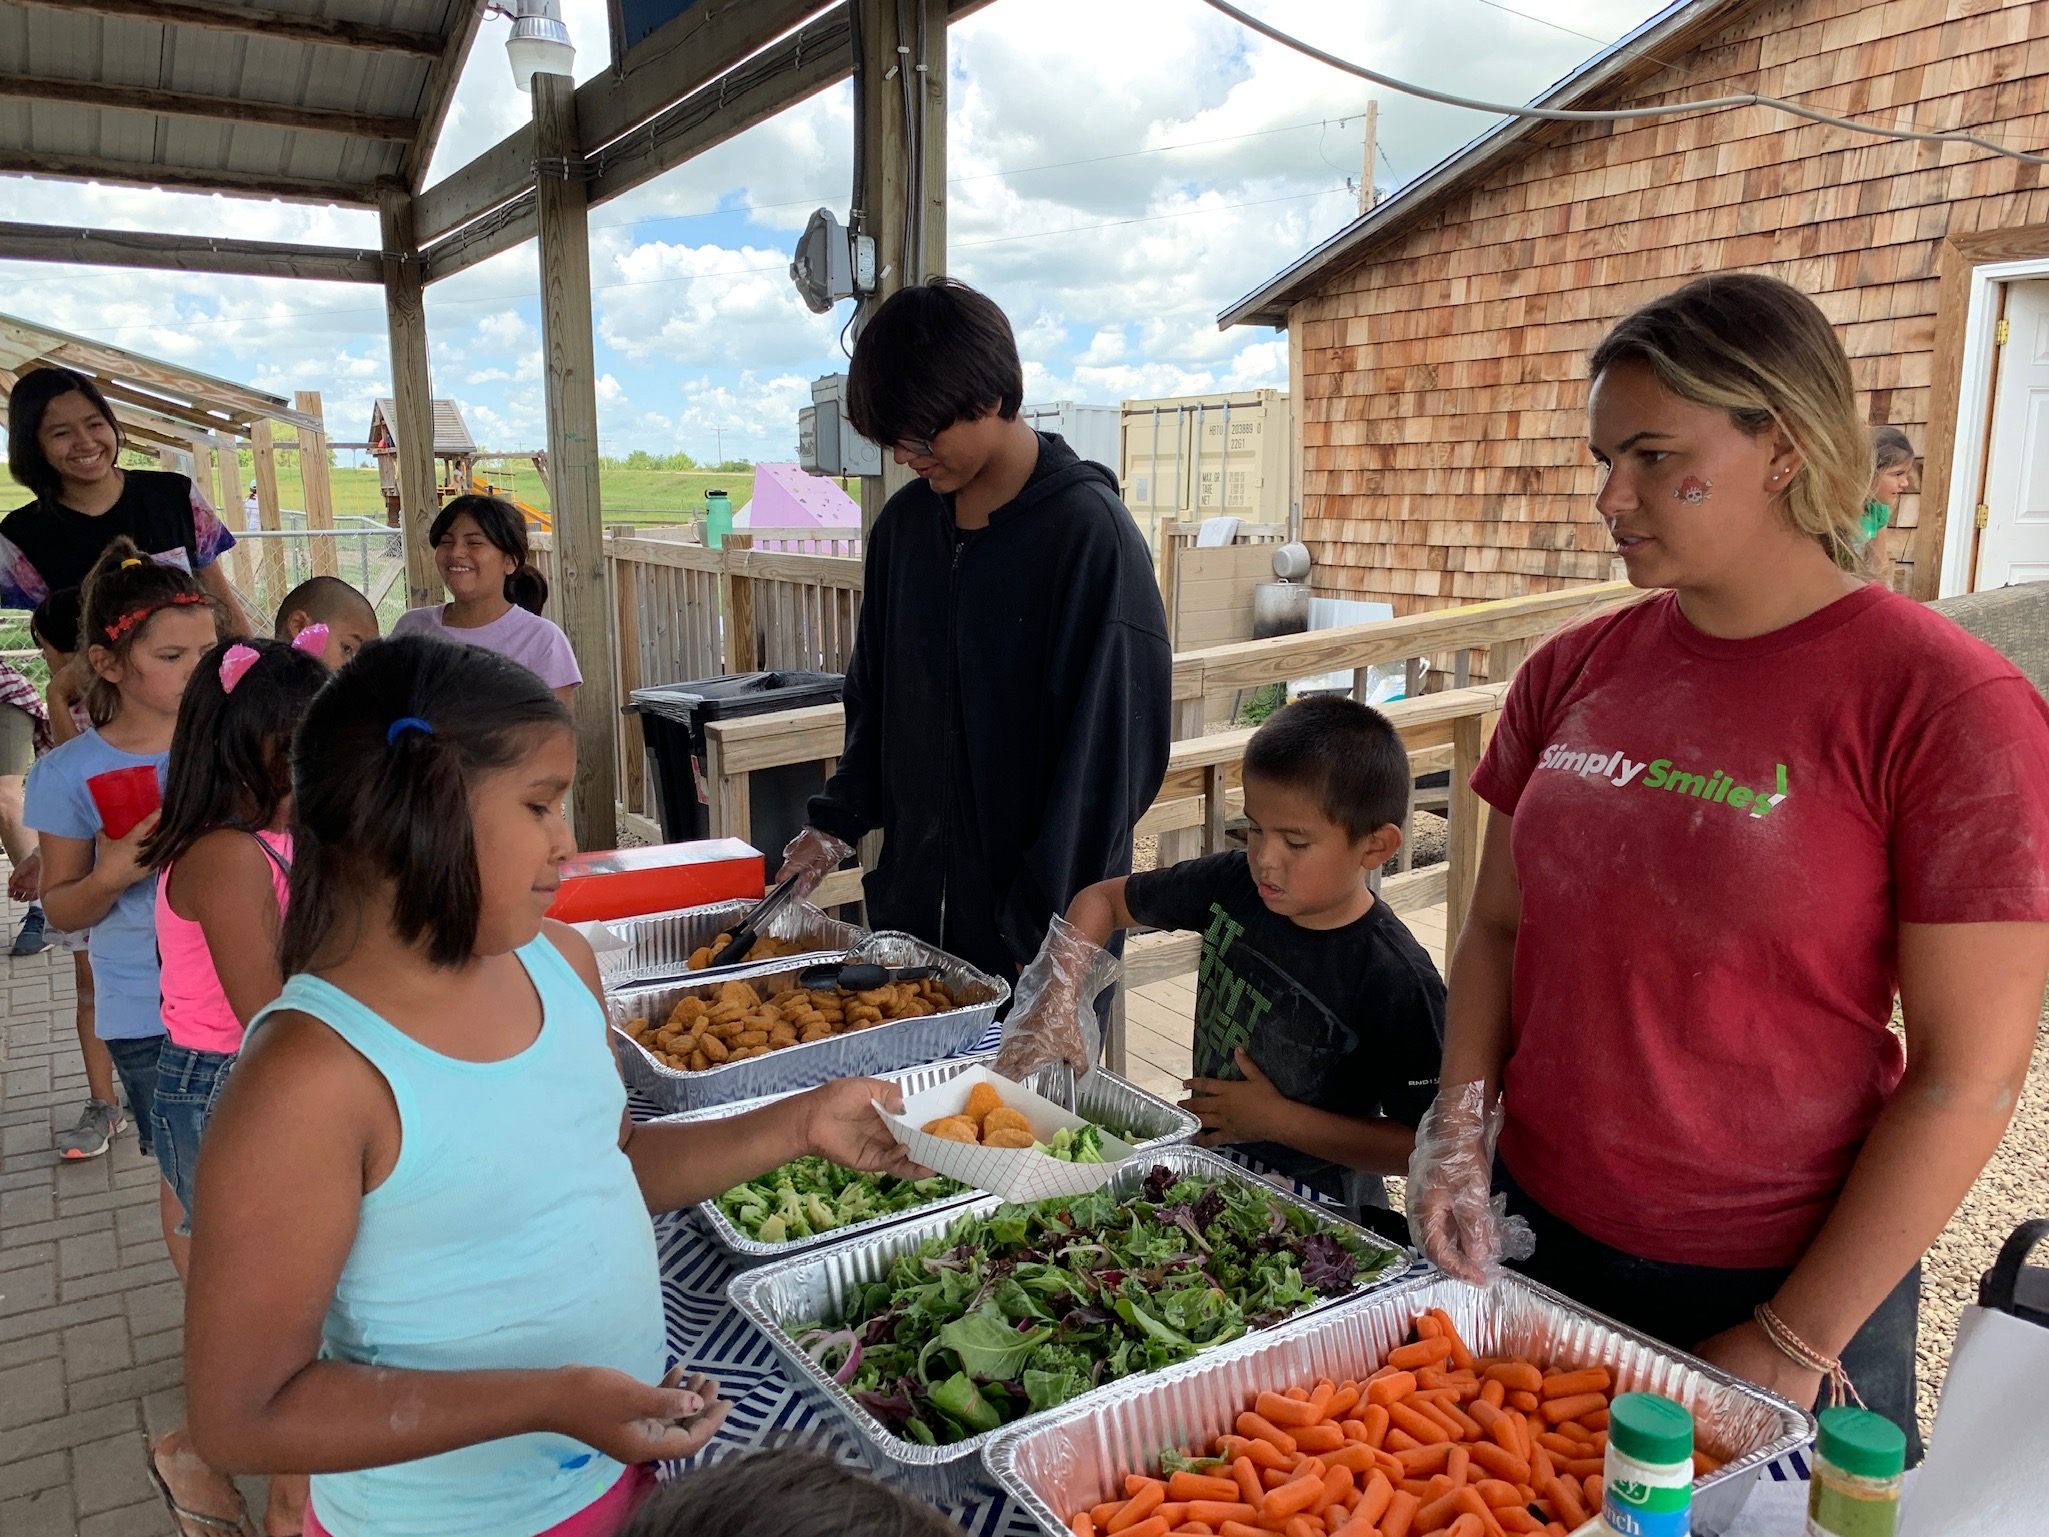 Healthful Meals:  Campers get a nutritious meals to fuel them through their action-packed day!